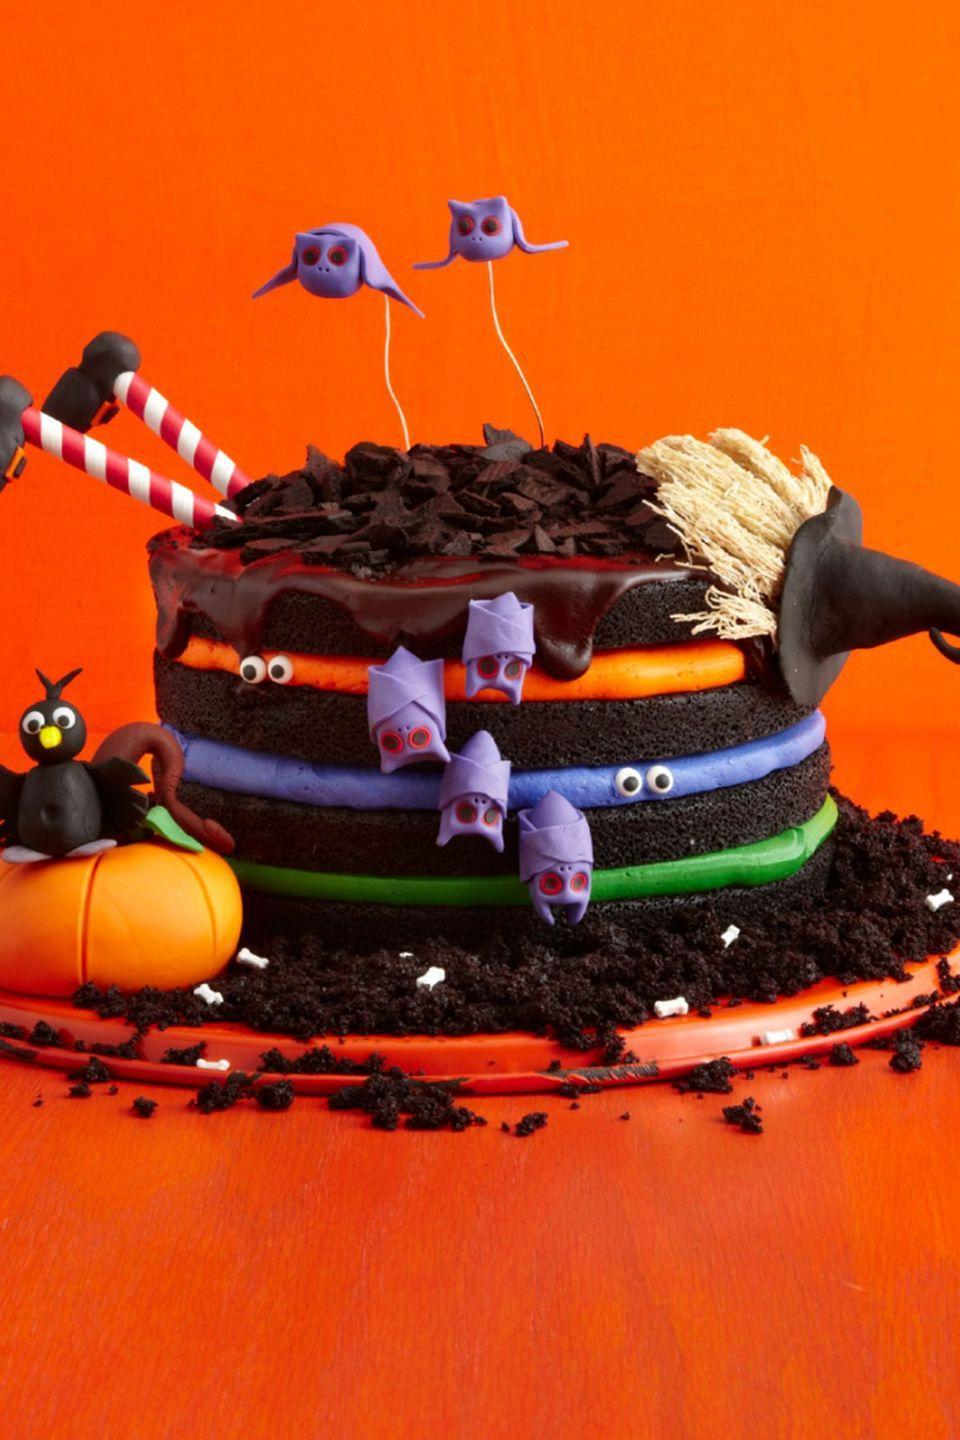 """<p>Colorful buttercream and edible fondant creatures turn a basic chocolate cake into something spooky and special.</p><p><strong><em><a href=""""https://www.womansday.com/food-recipes/food-drinks/recipes/a51843/black-chocolate-cake/"""" rel=""""nofollow noopener"""" target=""""_blank"""" data-ylk=""""slk:Get the Black Chocolate Witch Cake recipe."""" class=""""link rapid-noclick-resp"""">Get the Black Chocolate Witch Cake recipe. </a></em></strong> </p>"""